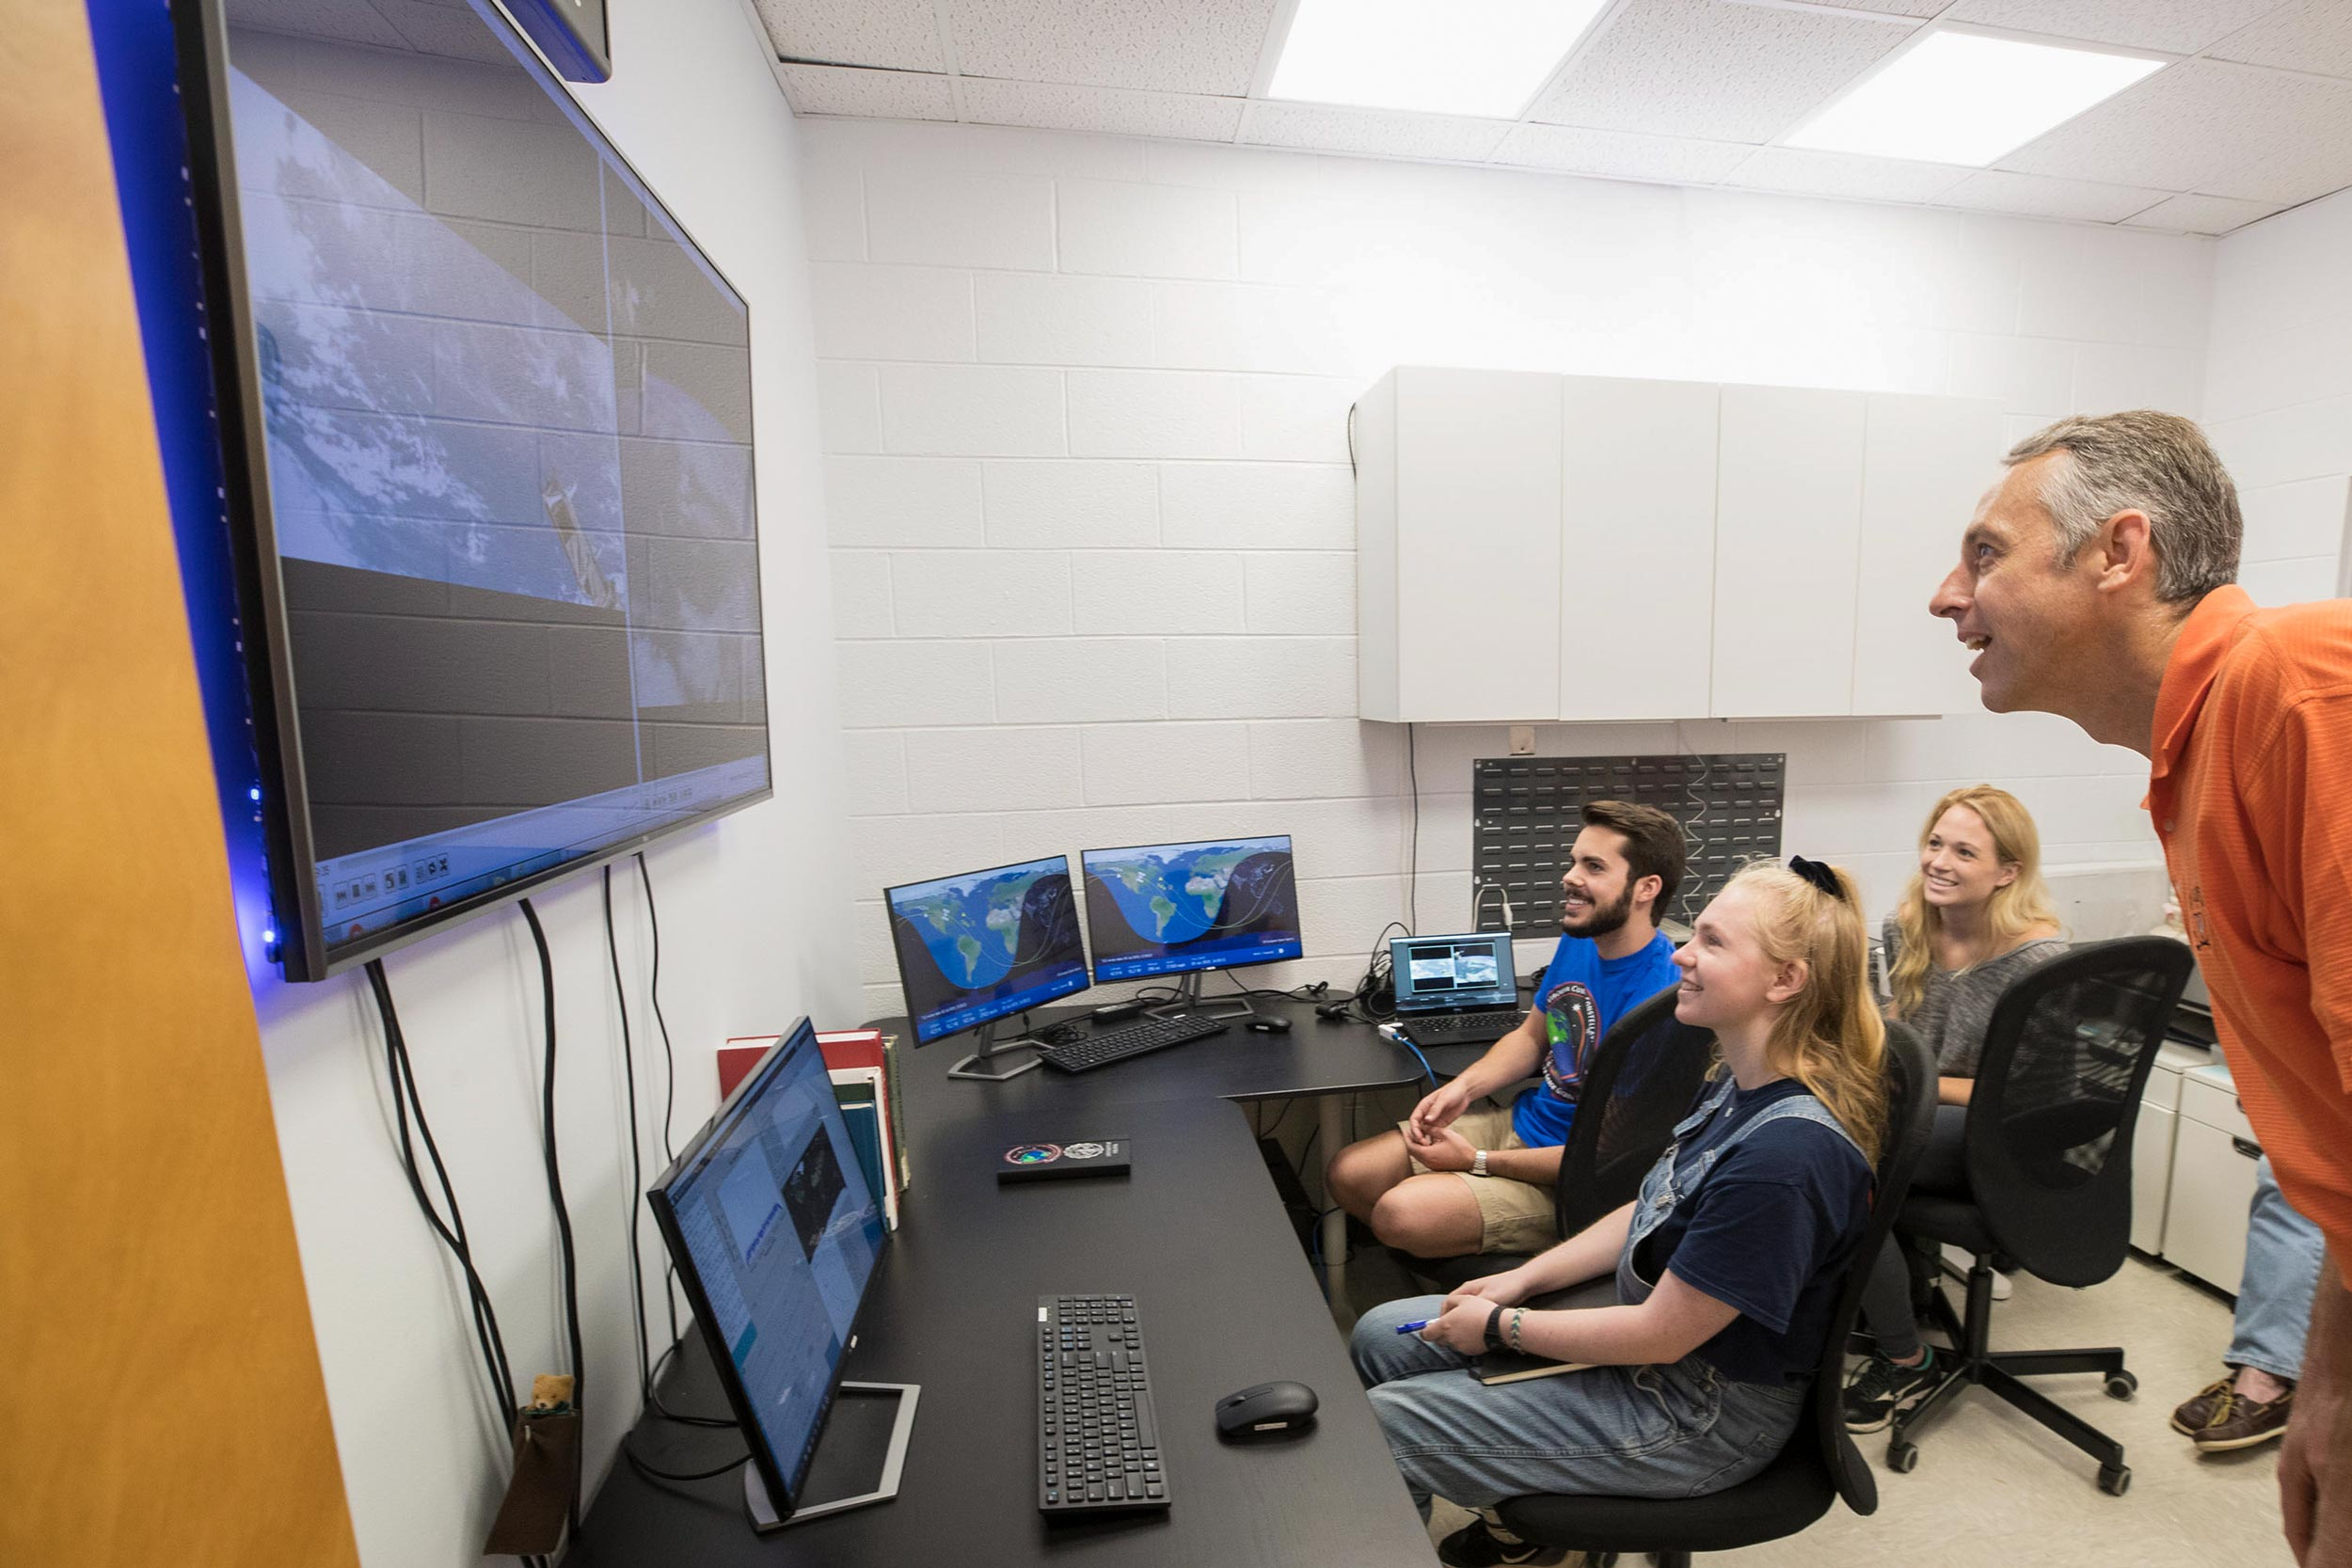 Engineering students Connor Segal, left, Hannah Umansky and Kathryn Wason watch the recent deployment of Libertas from the International Space Station with professor Chris Goyne.